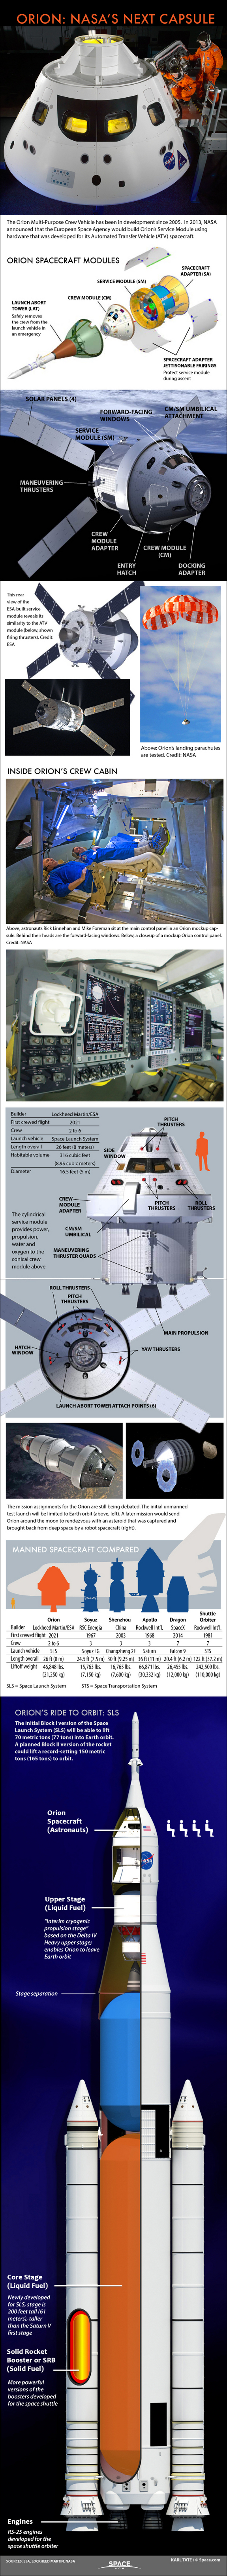 "NASA's Orion deep-space capsule is slated to be the go-to spacecraft for missions to an asteroid and beyond. <a href=""http://www.space.com/19292-nasa-orion-space-capsule-explained-infographic.html"">See how NASA's Orion spacecraft will work in this Space.com infographic</a>."